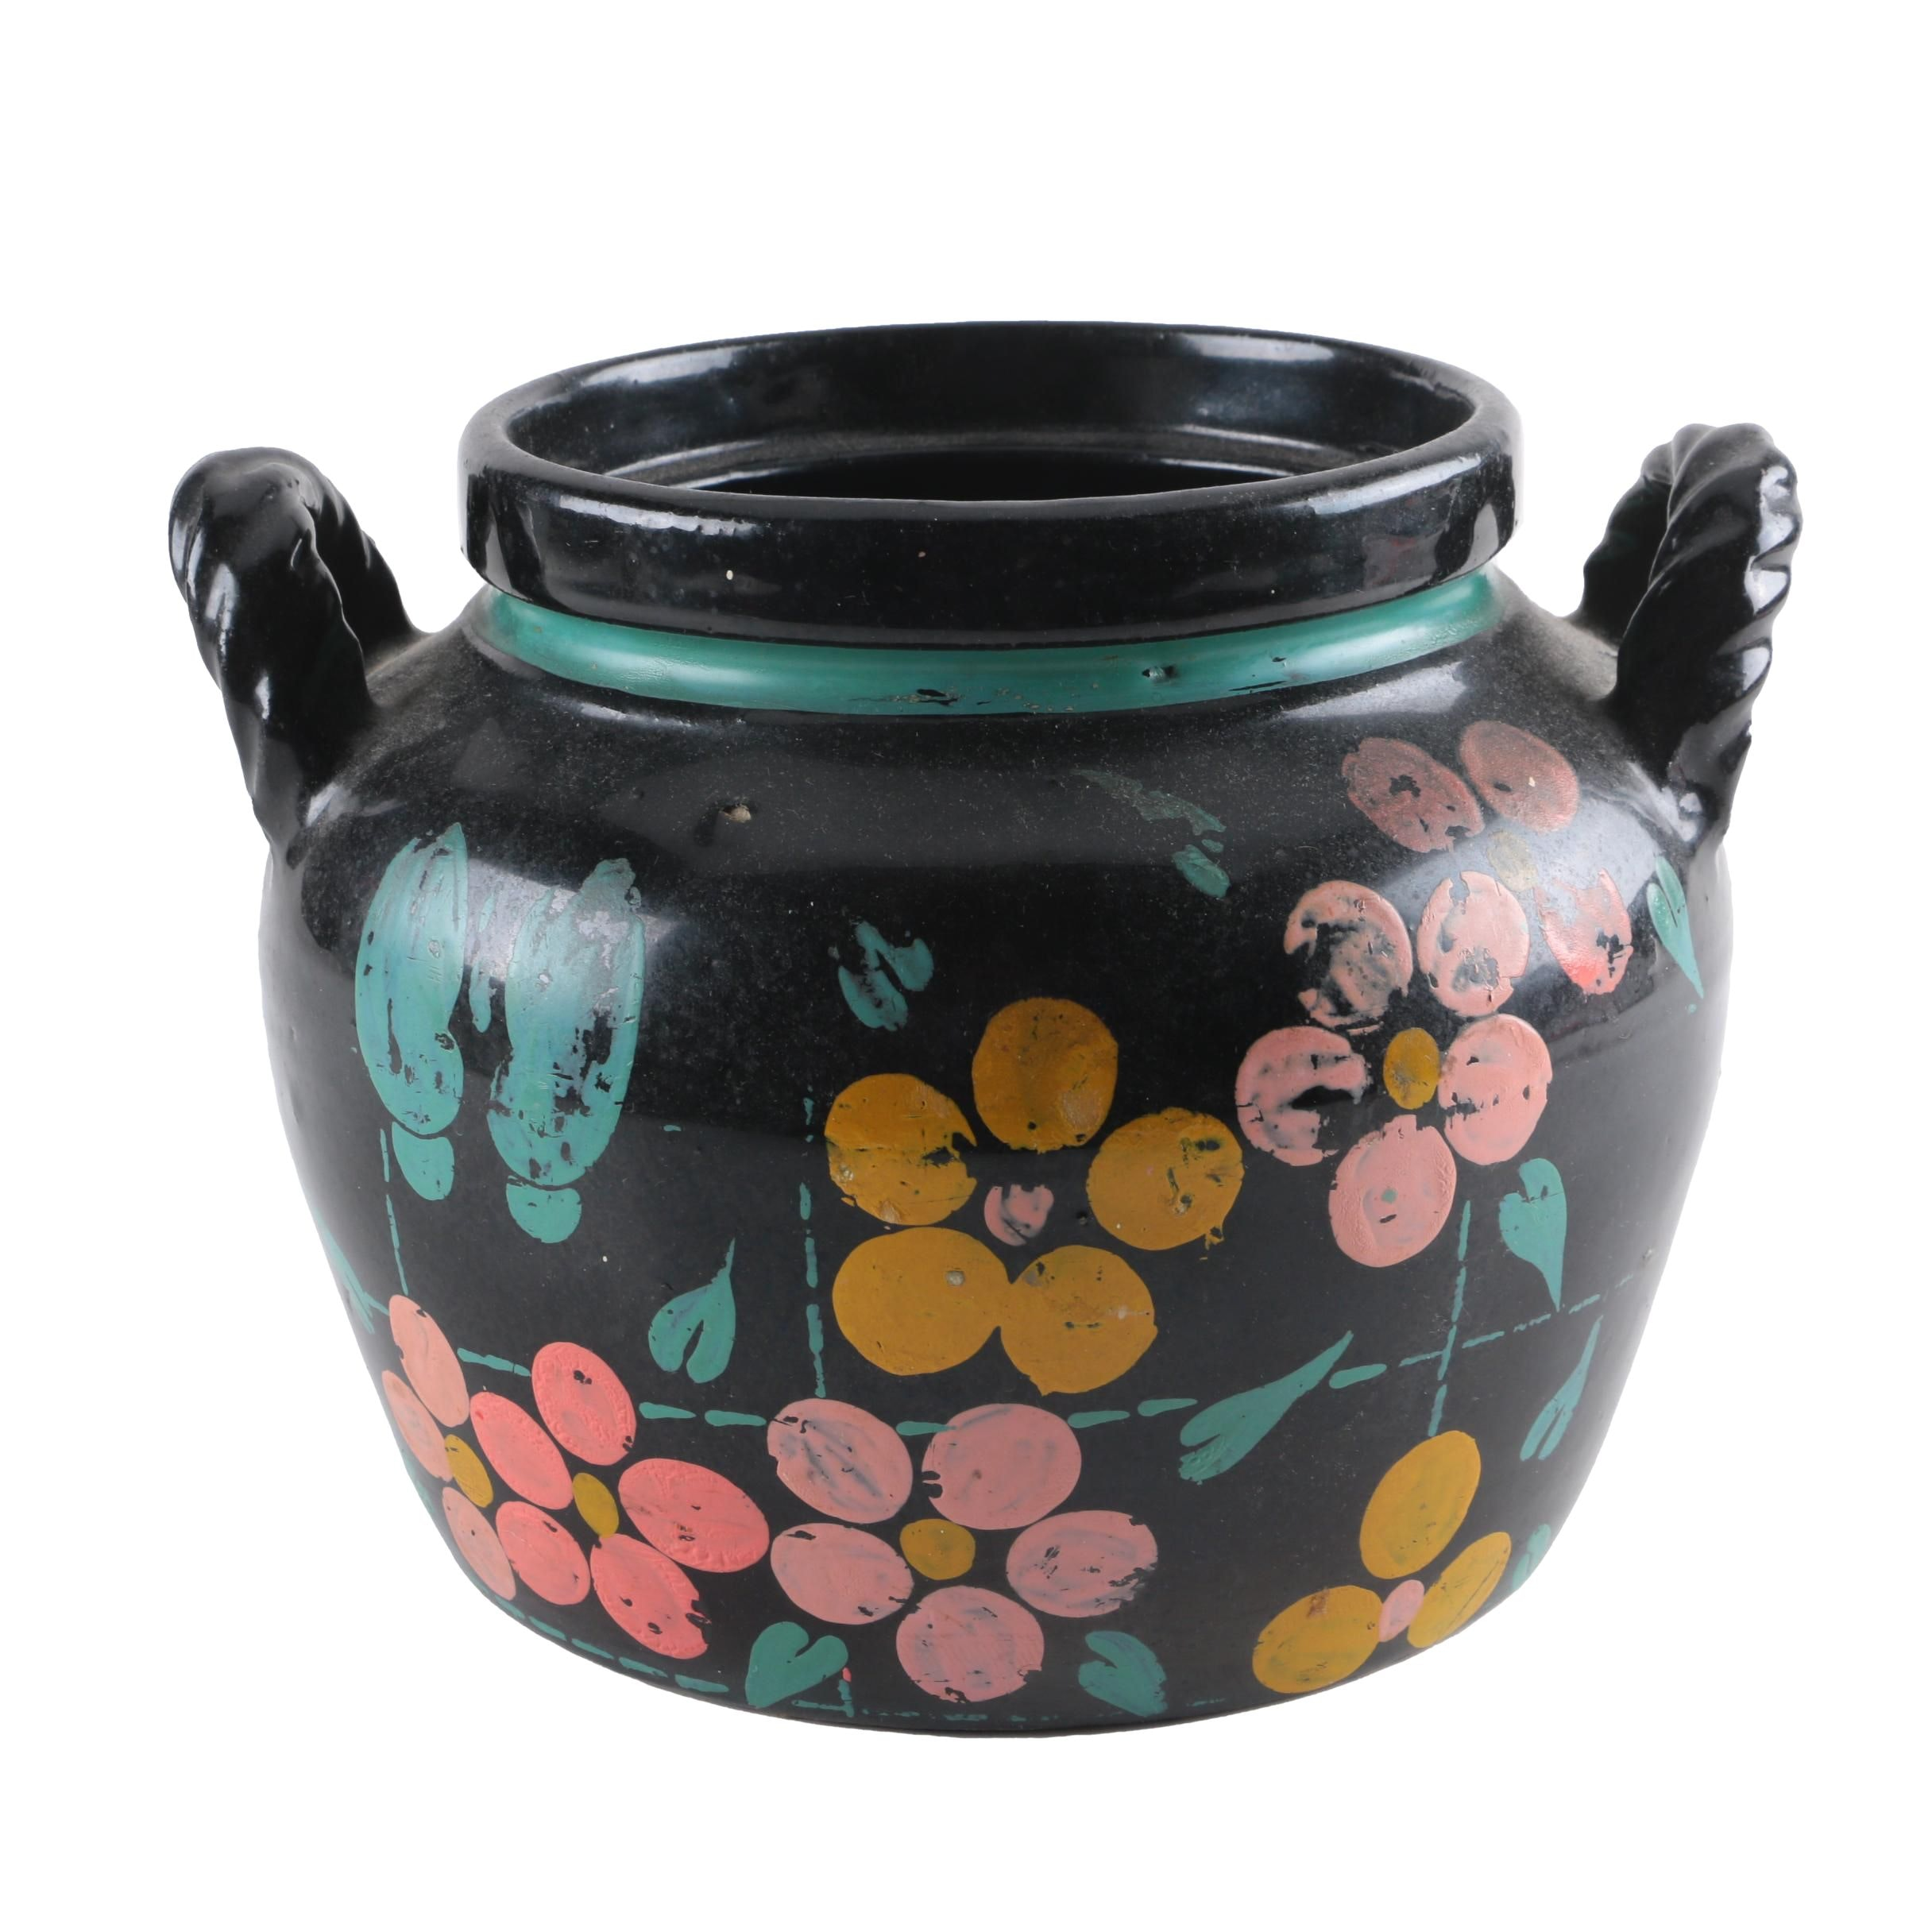 Hand Painted Ceramic Double Handled Crock